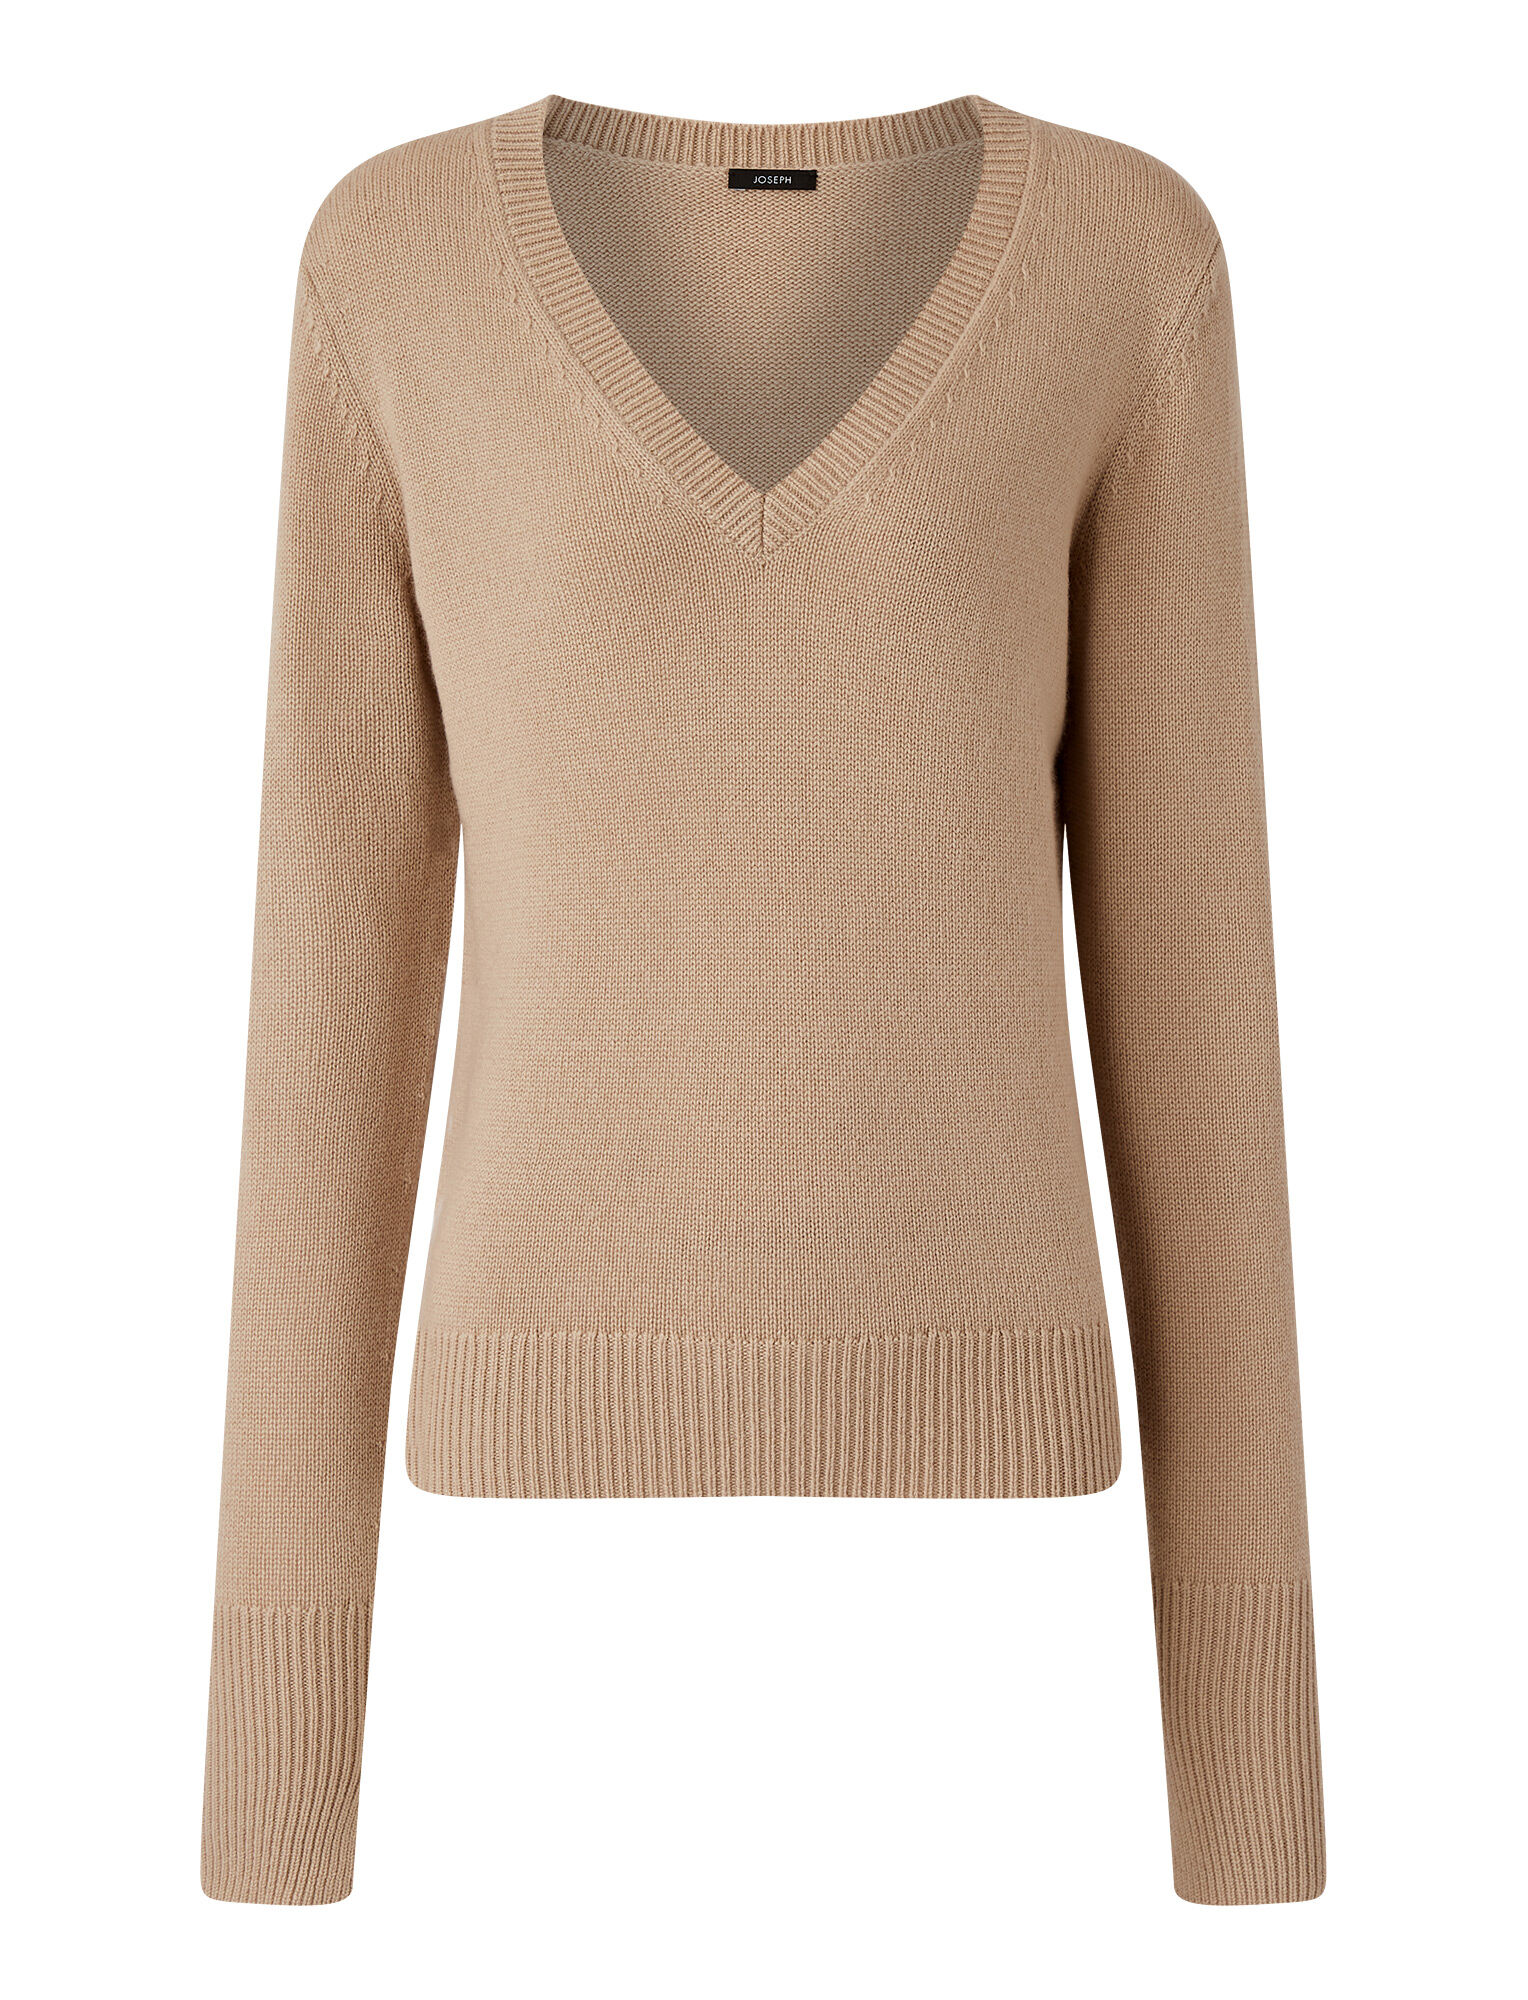 Joseph, Pure Cashmere V Neck Jumper, in CHAMPAGNE